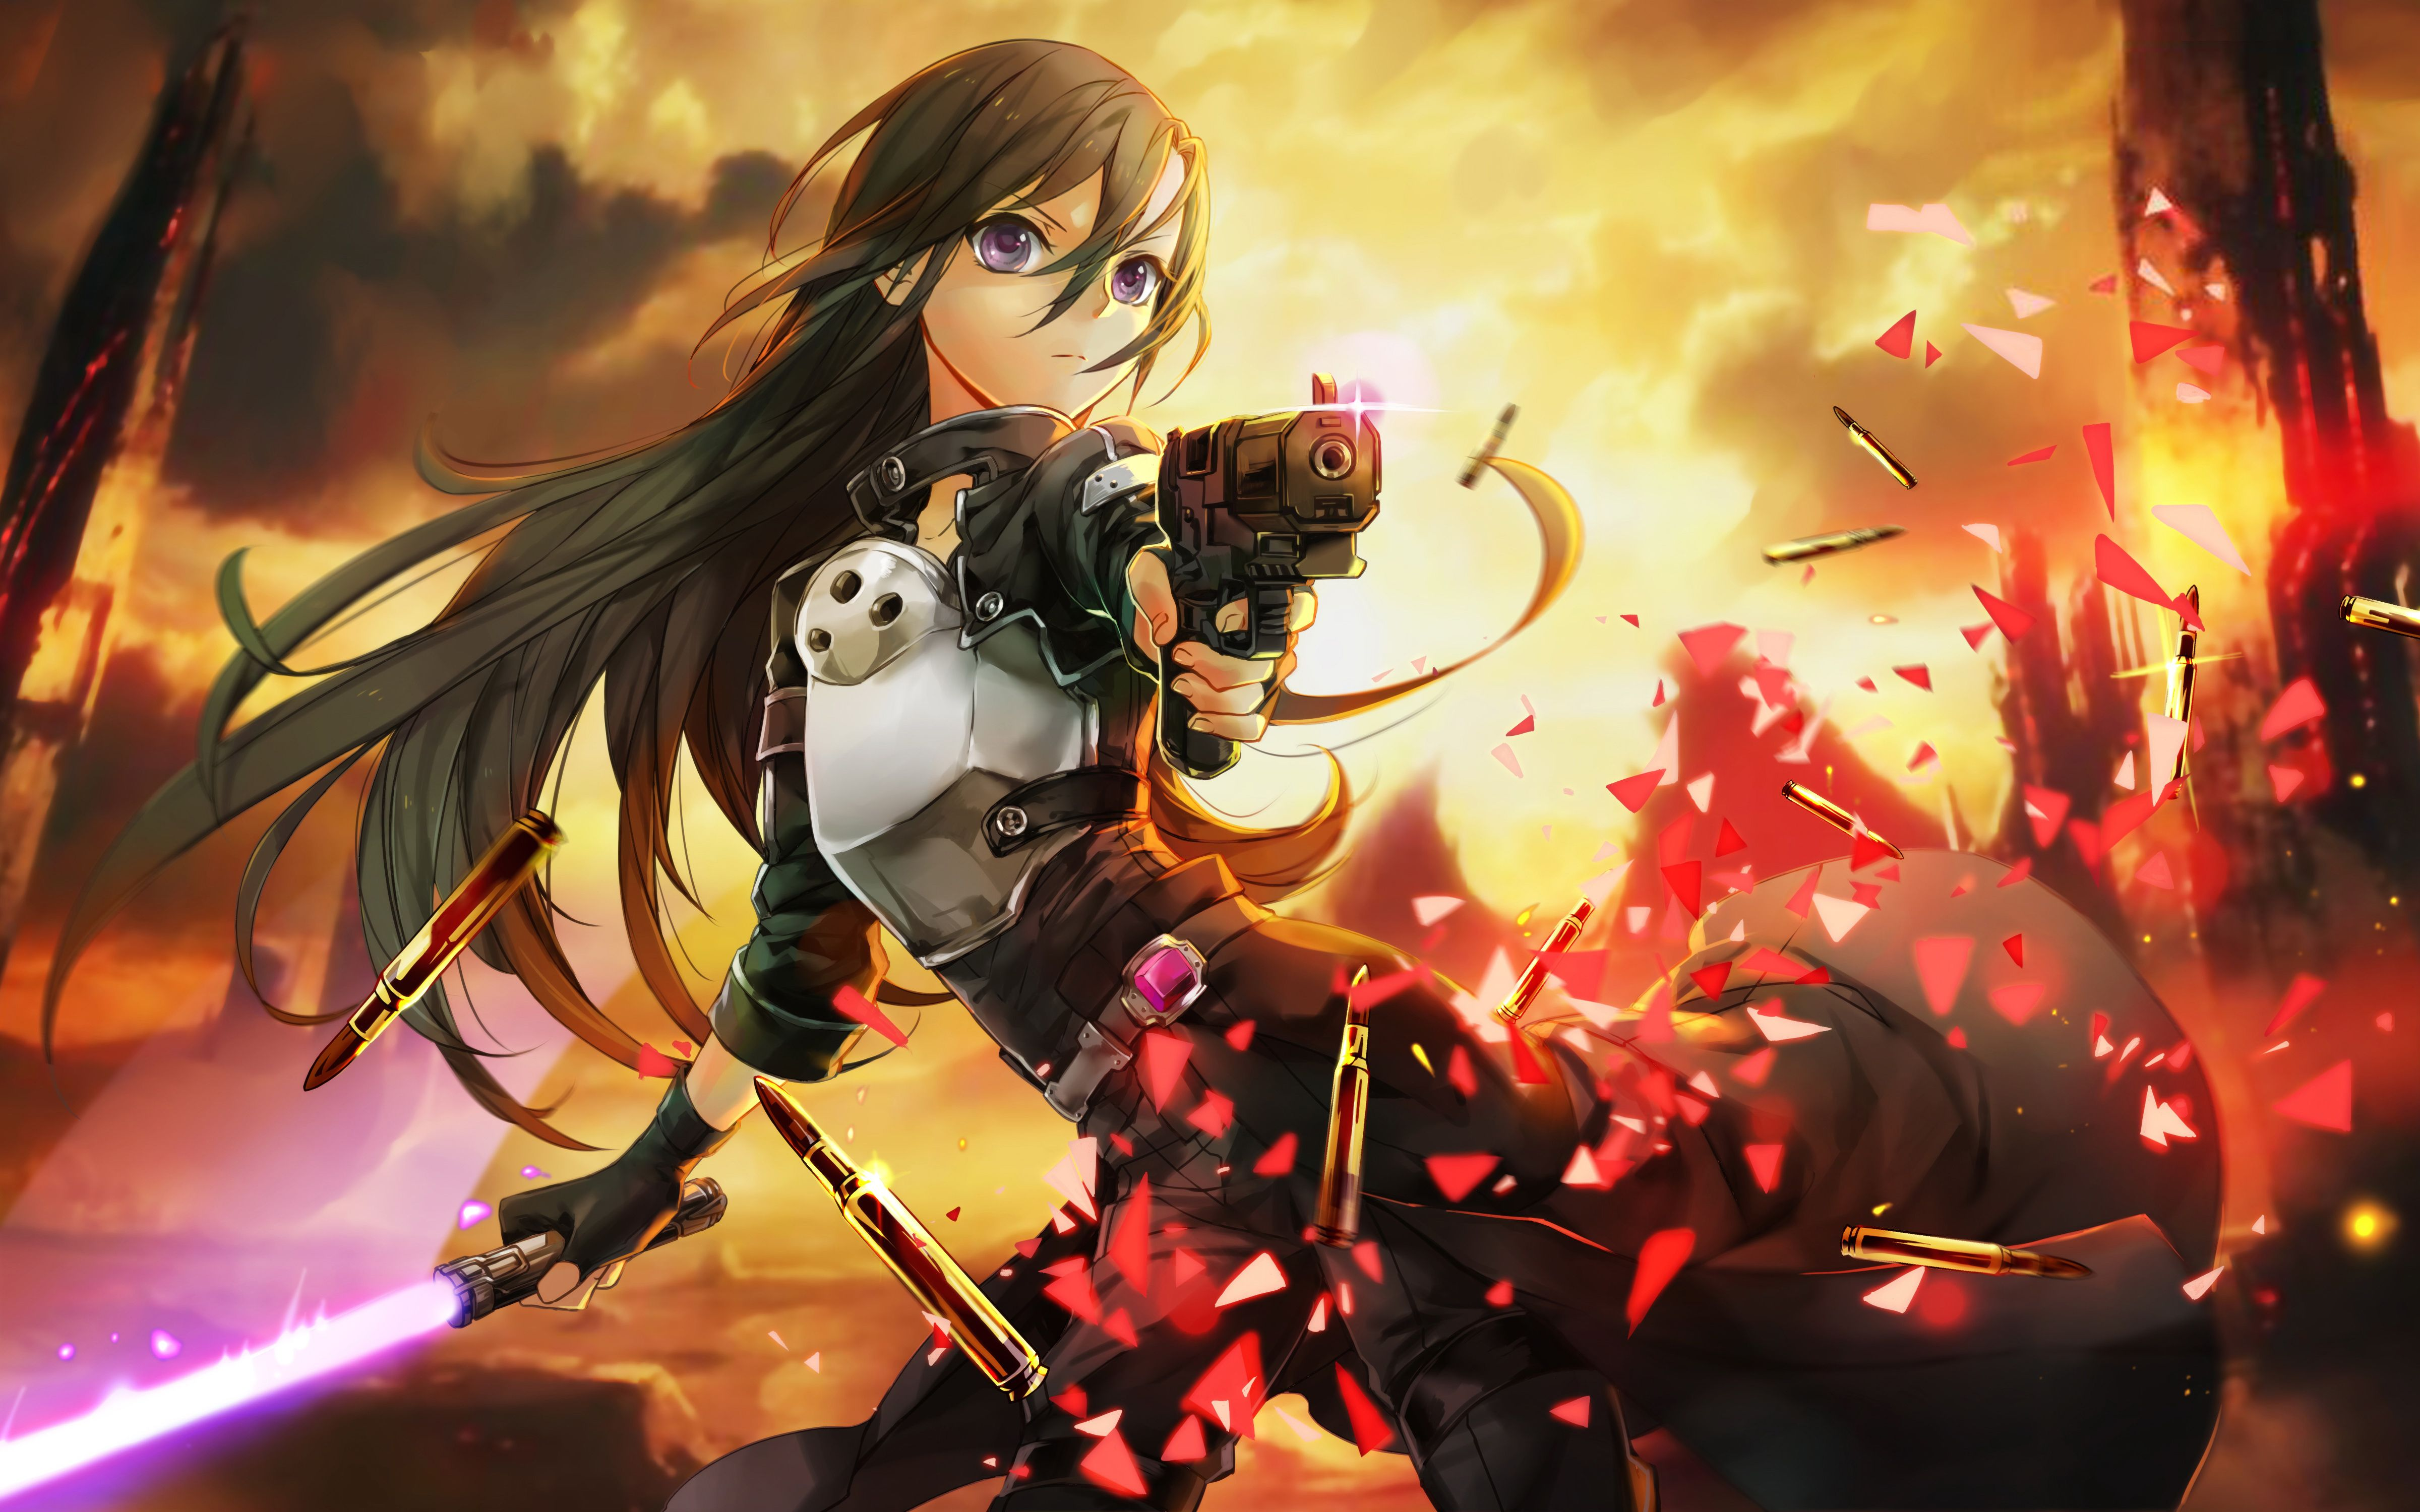 Fondos De Pc Anime: Sao Fondo De Pantalla Pc